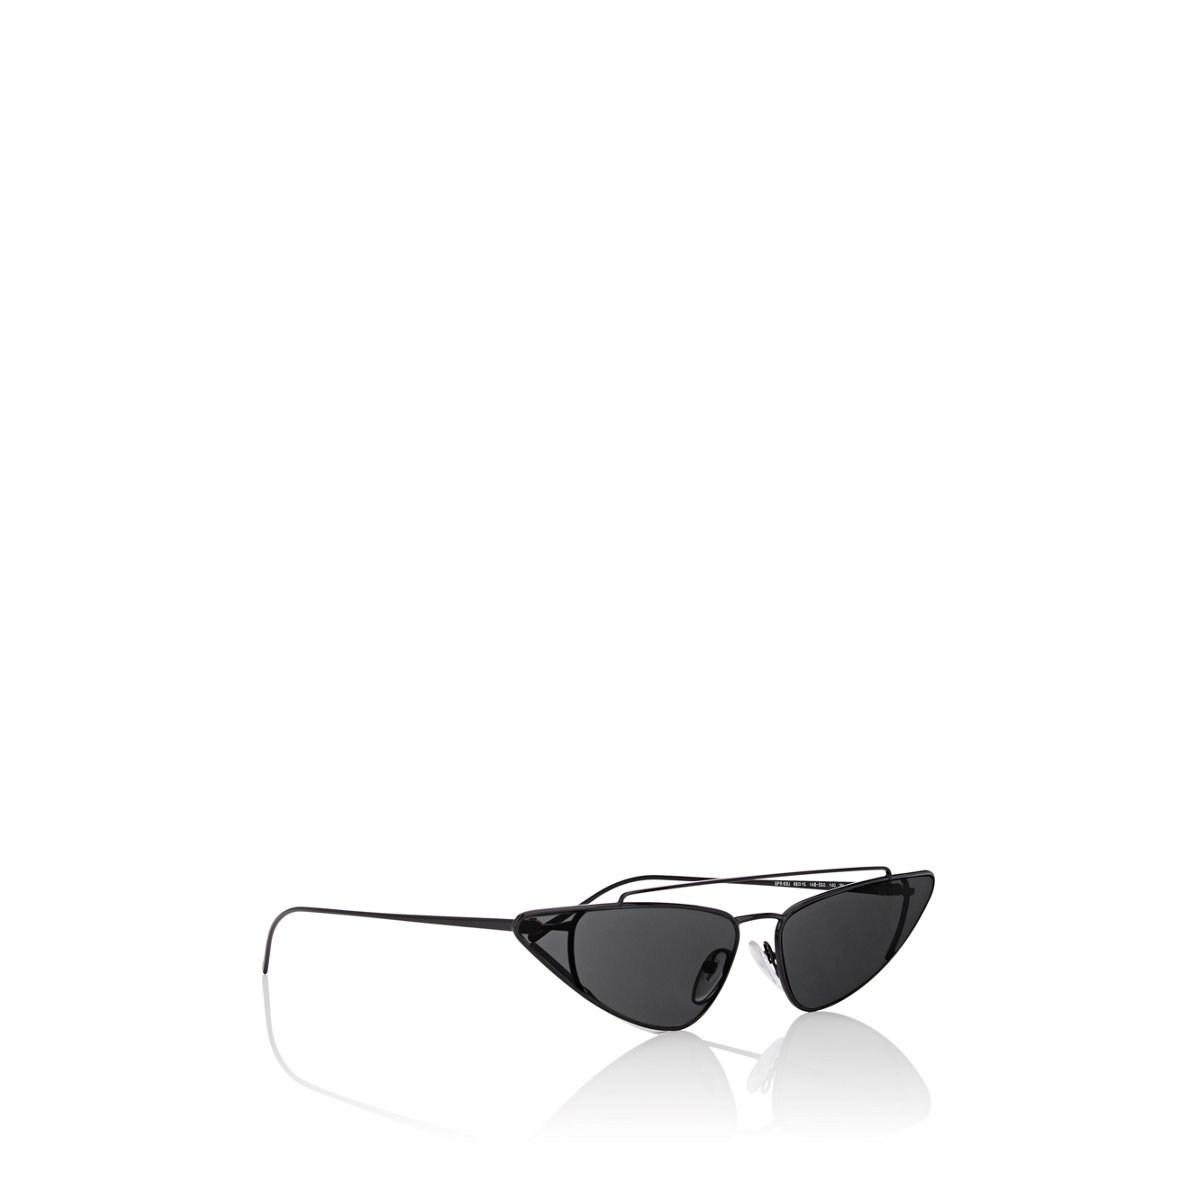 2ab627de5bbd Prada - Black Triangular Cat-eye Sunglasses - Lyst. View fullscreen